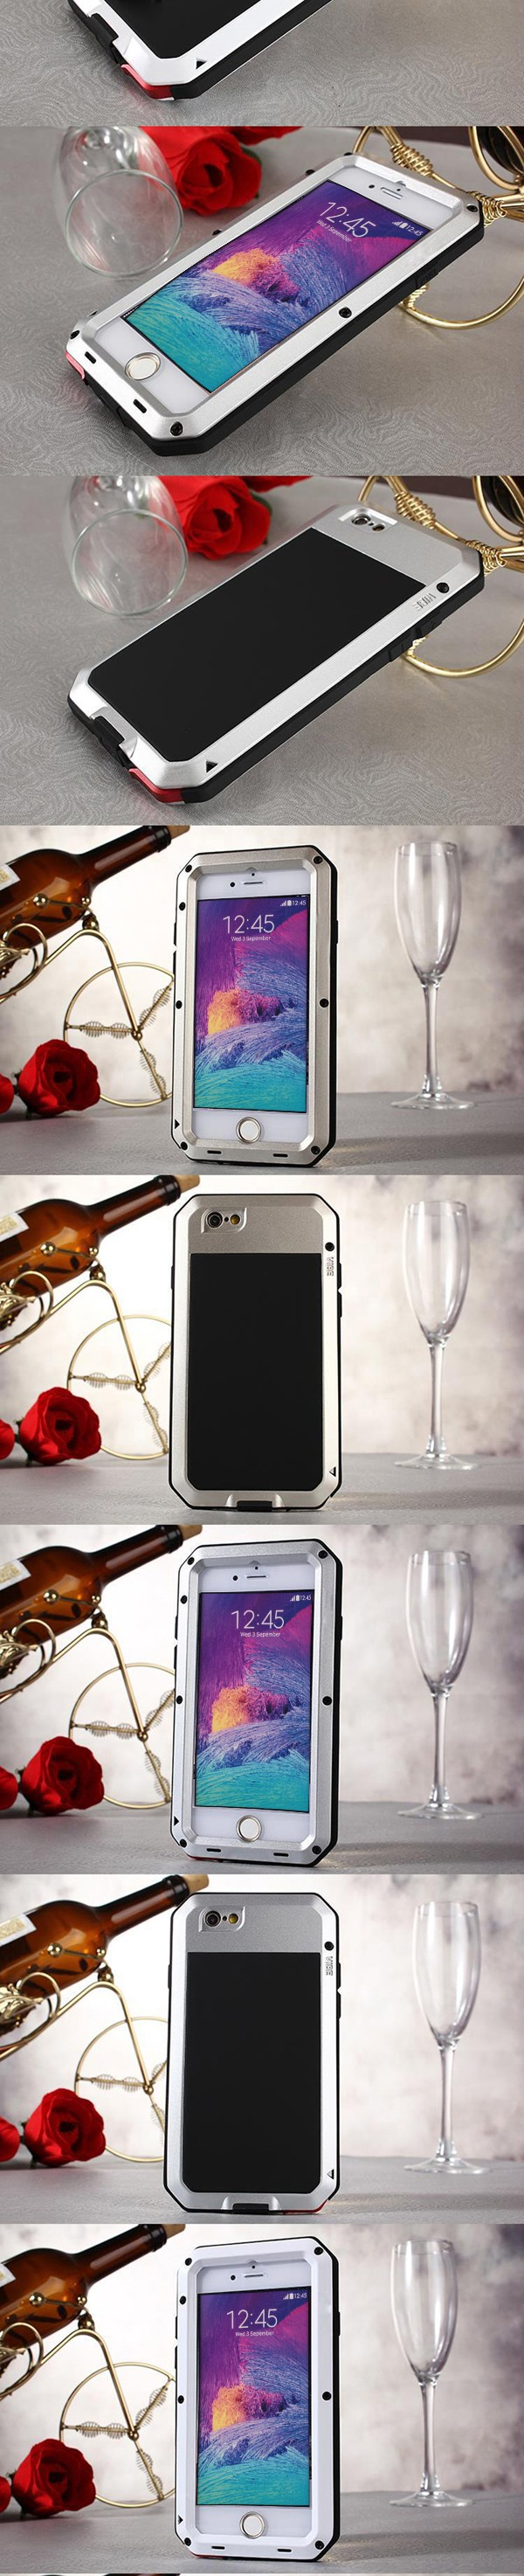 Metal Extreme Shockproof Military Heavy Duty Tempered Glass Cover Case Skin for iPhone 6 Plus/6s Plus 5.5″ Full-Body proof case